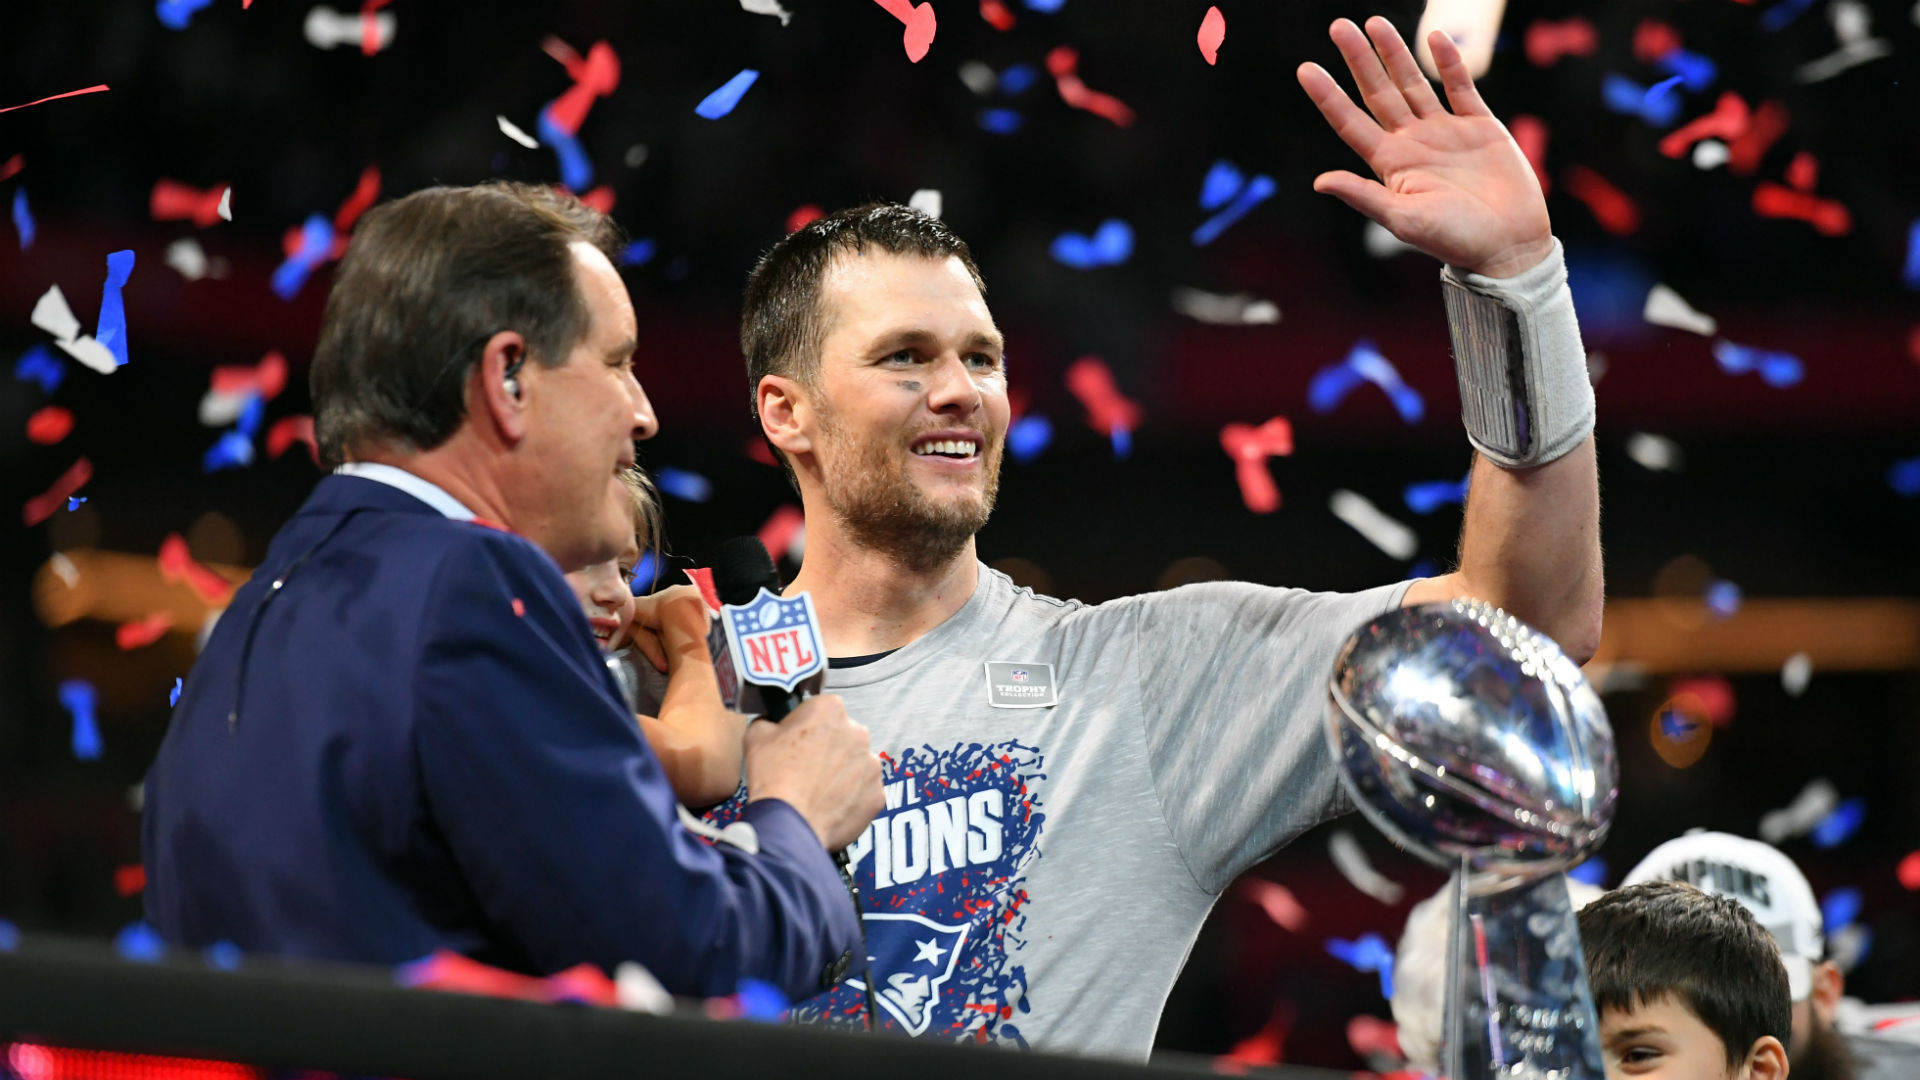 Super Bowl LIV Odds Pats and Rams remain the favorites NBC 1920x1080